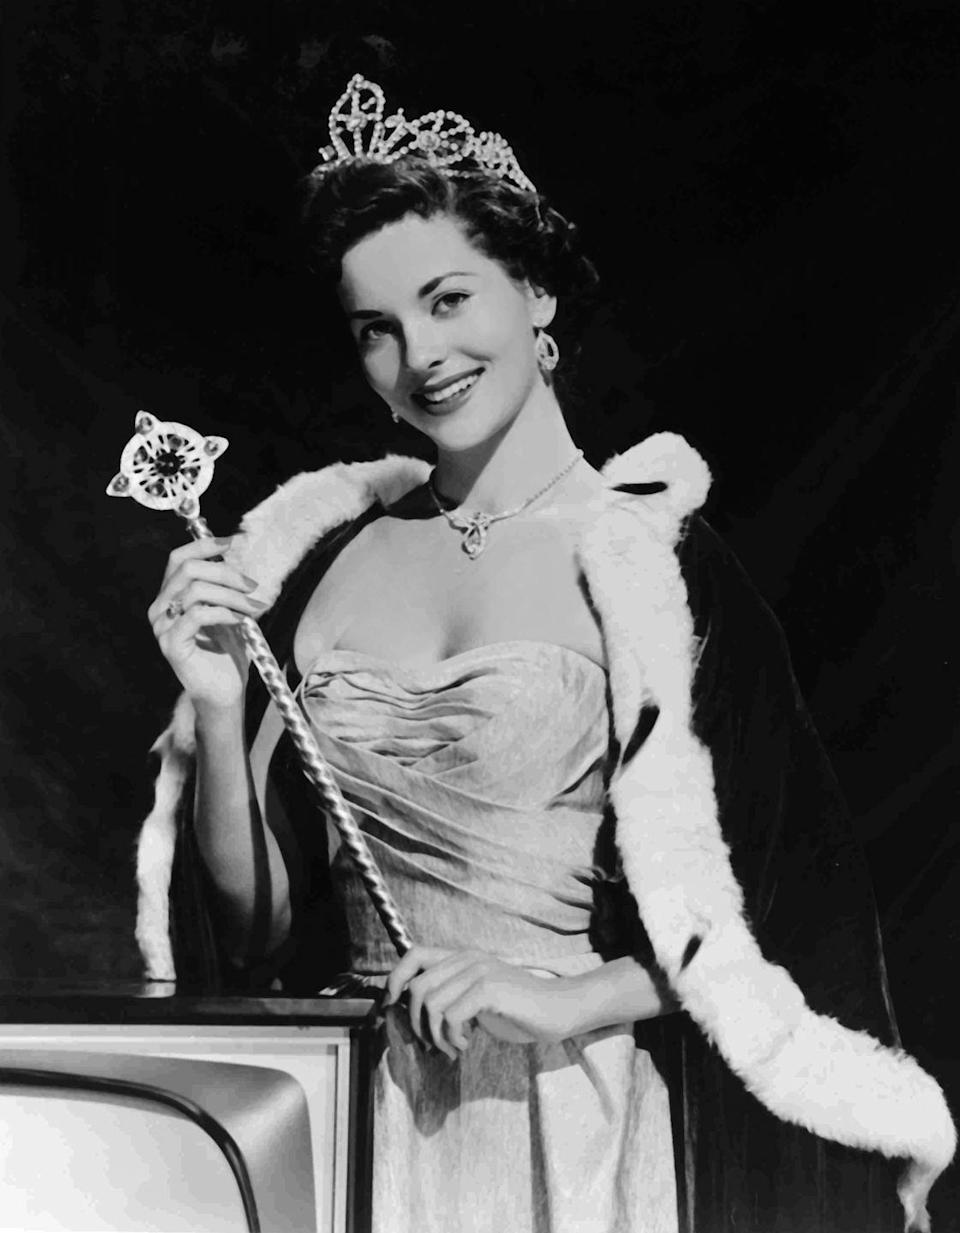 <p>Lee Meriwether from California wore a regal evening gown to match her crown for her Miss America portrait. The pleated detailing and sweetheart neckline brought the perfect amount of glamour to the competition.</p>